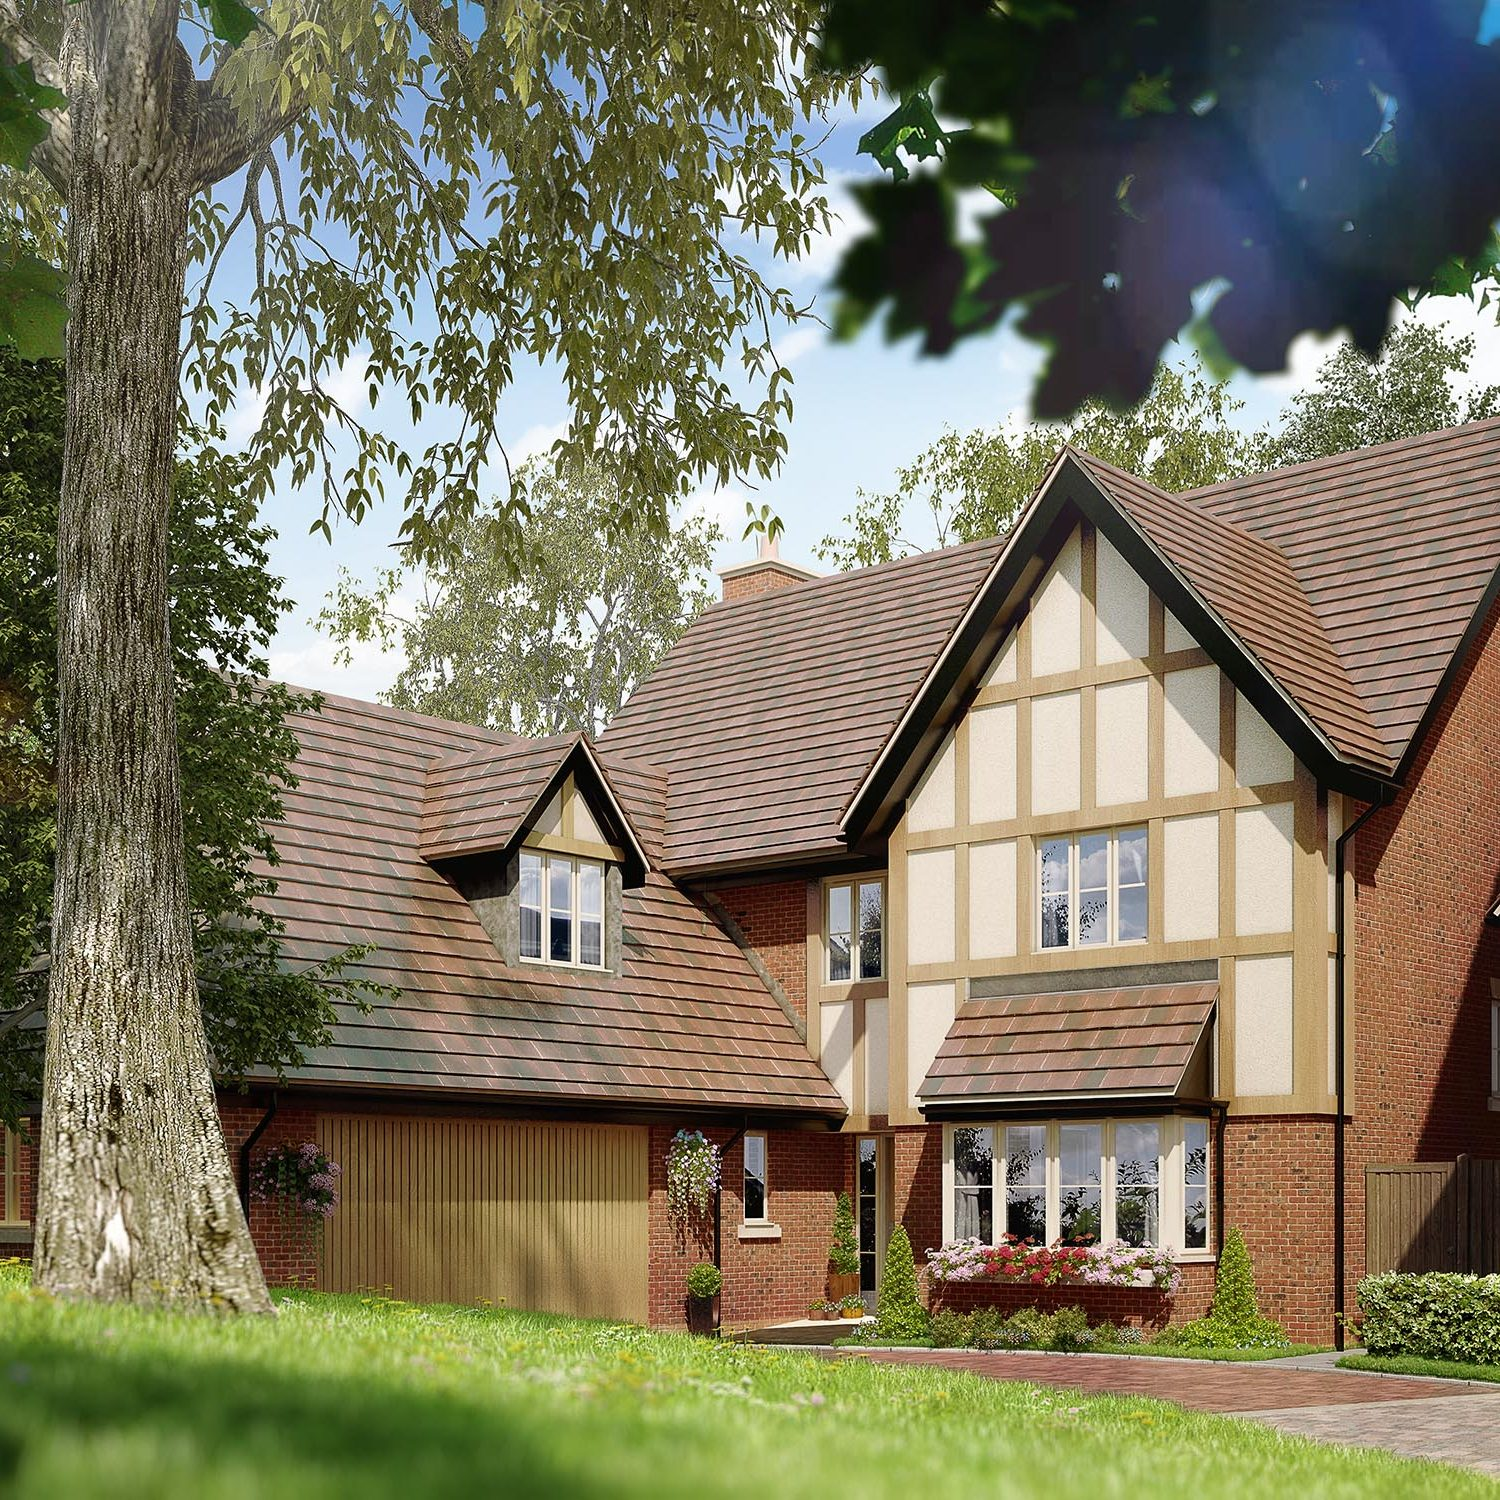 7 high end homes in Ascot